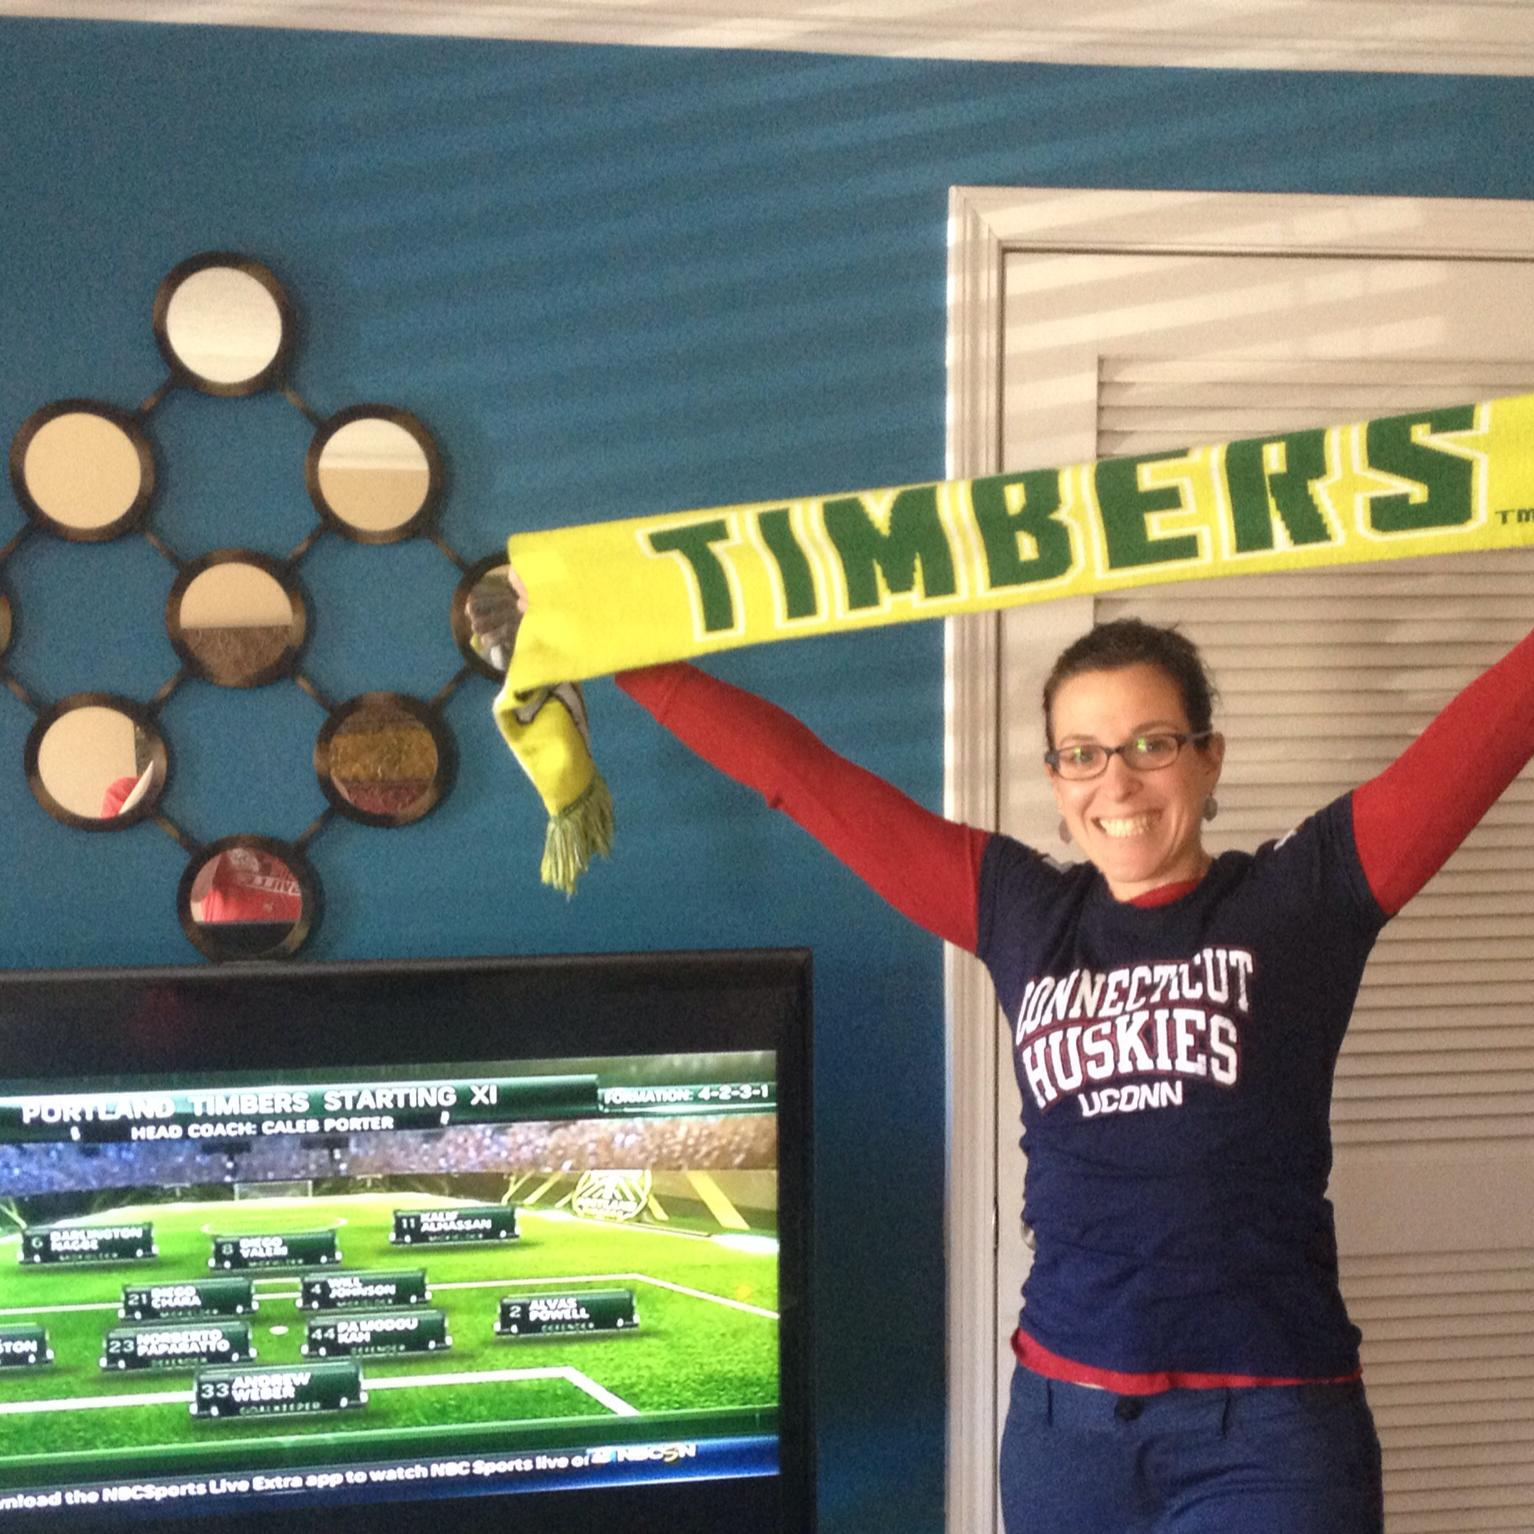 Cheering for Portland Timbers (PTFC) and Huskies Saturday.